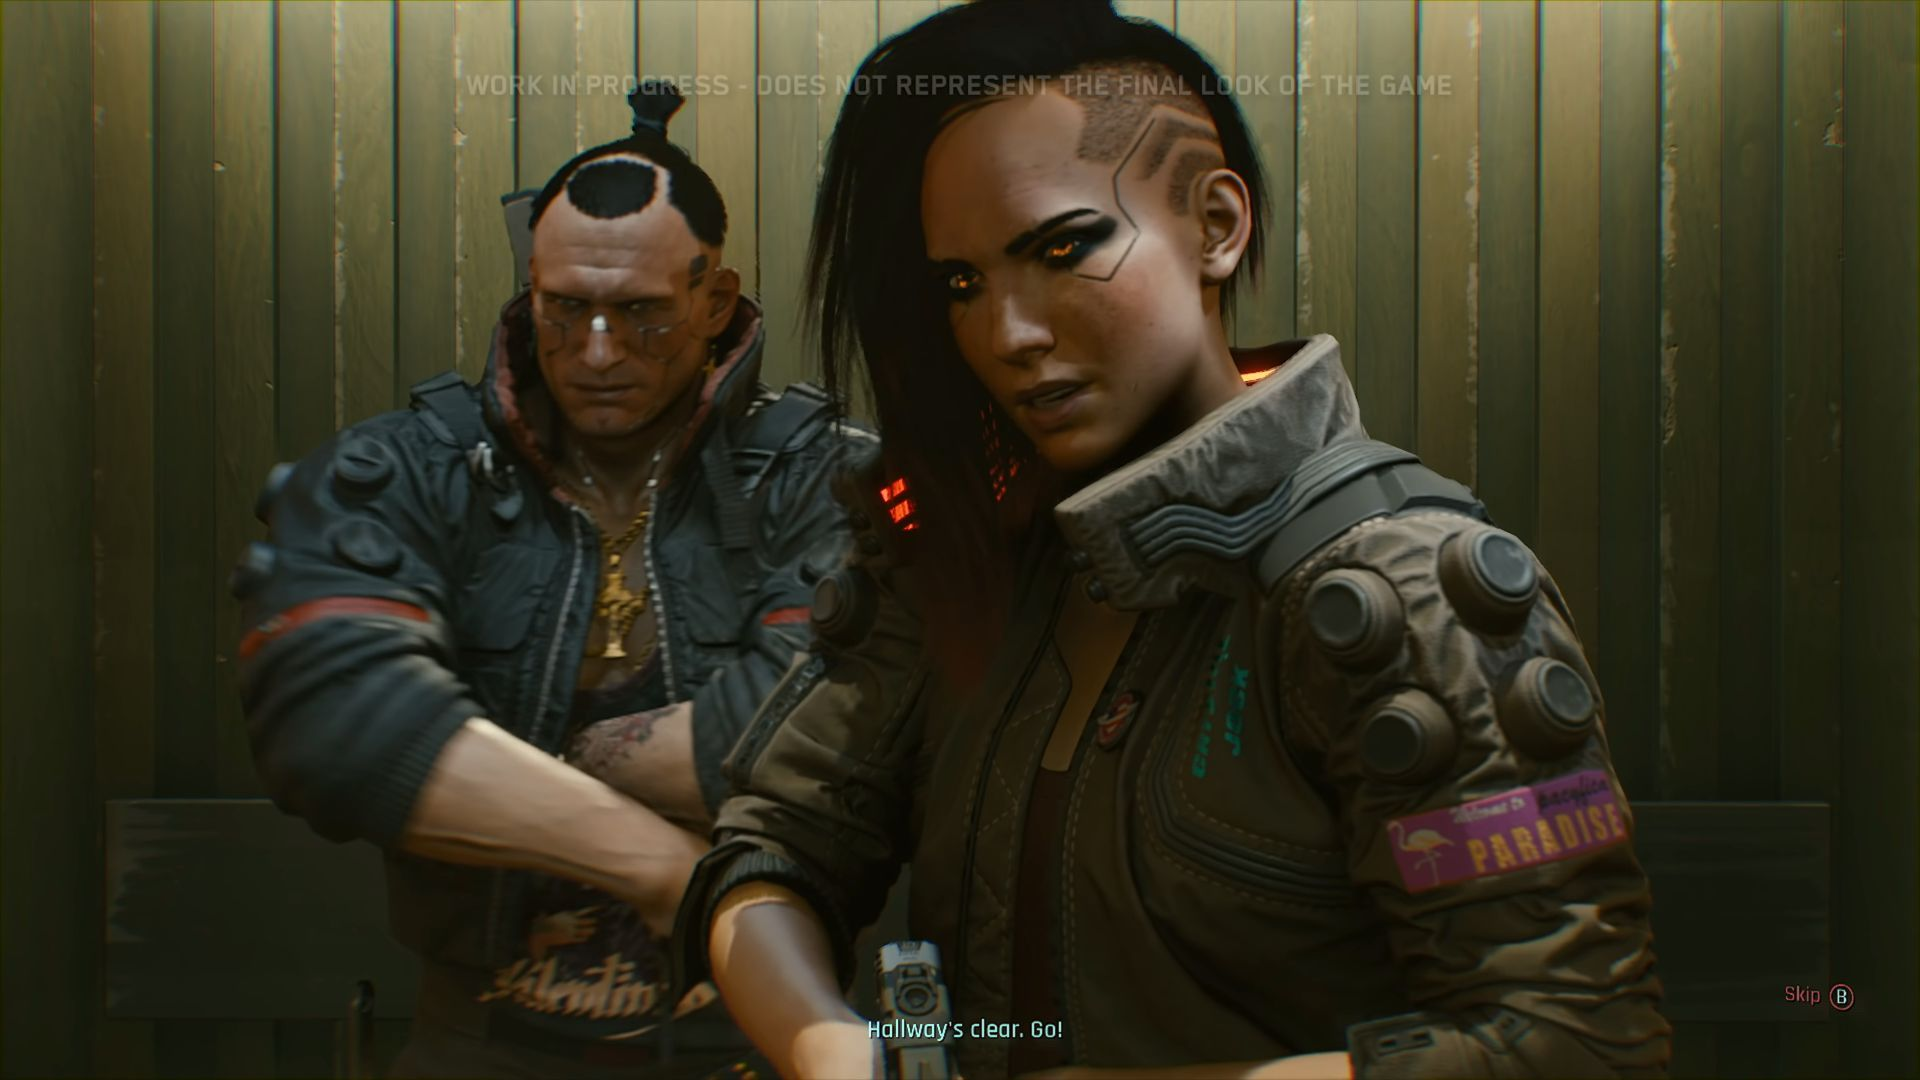 WATCH: 48 Minutes of 'Cyberpunk 2077' Gameplay